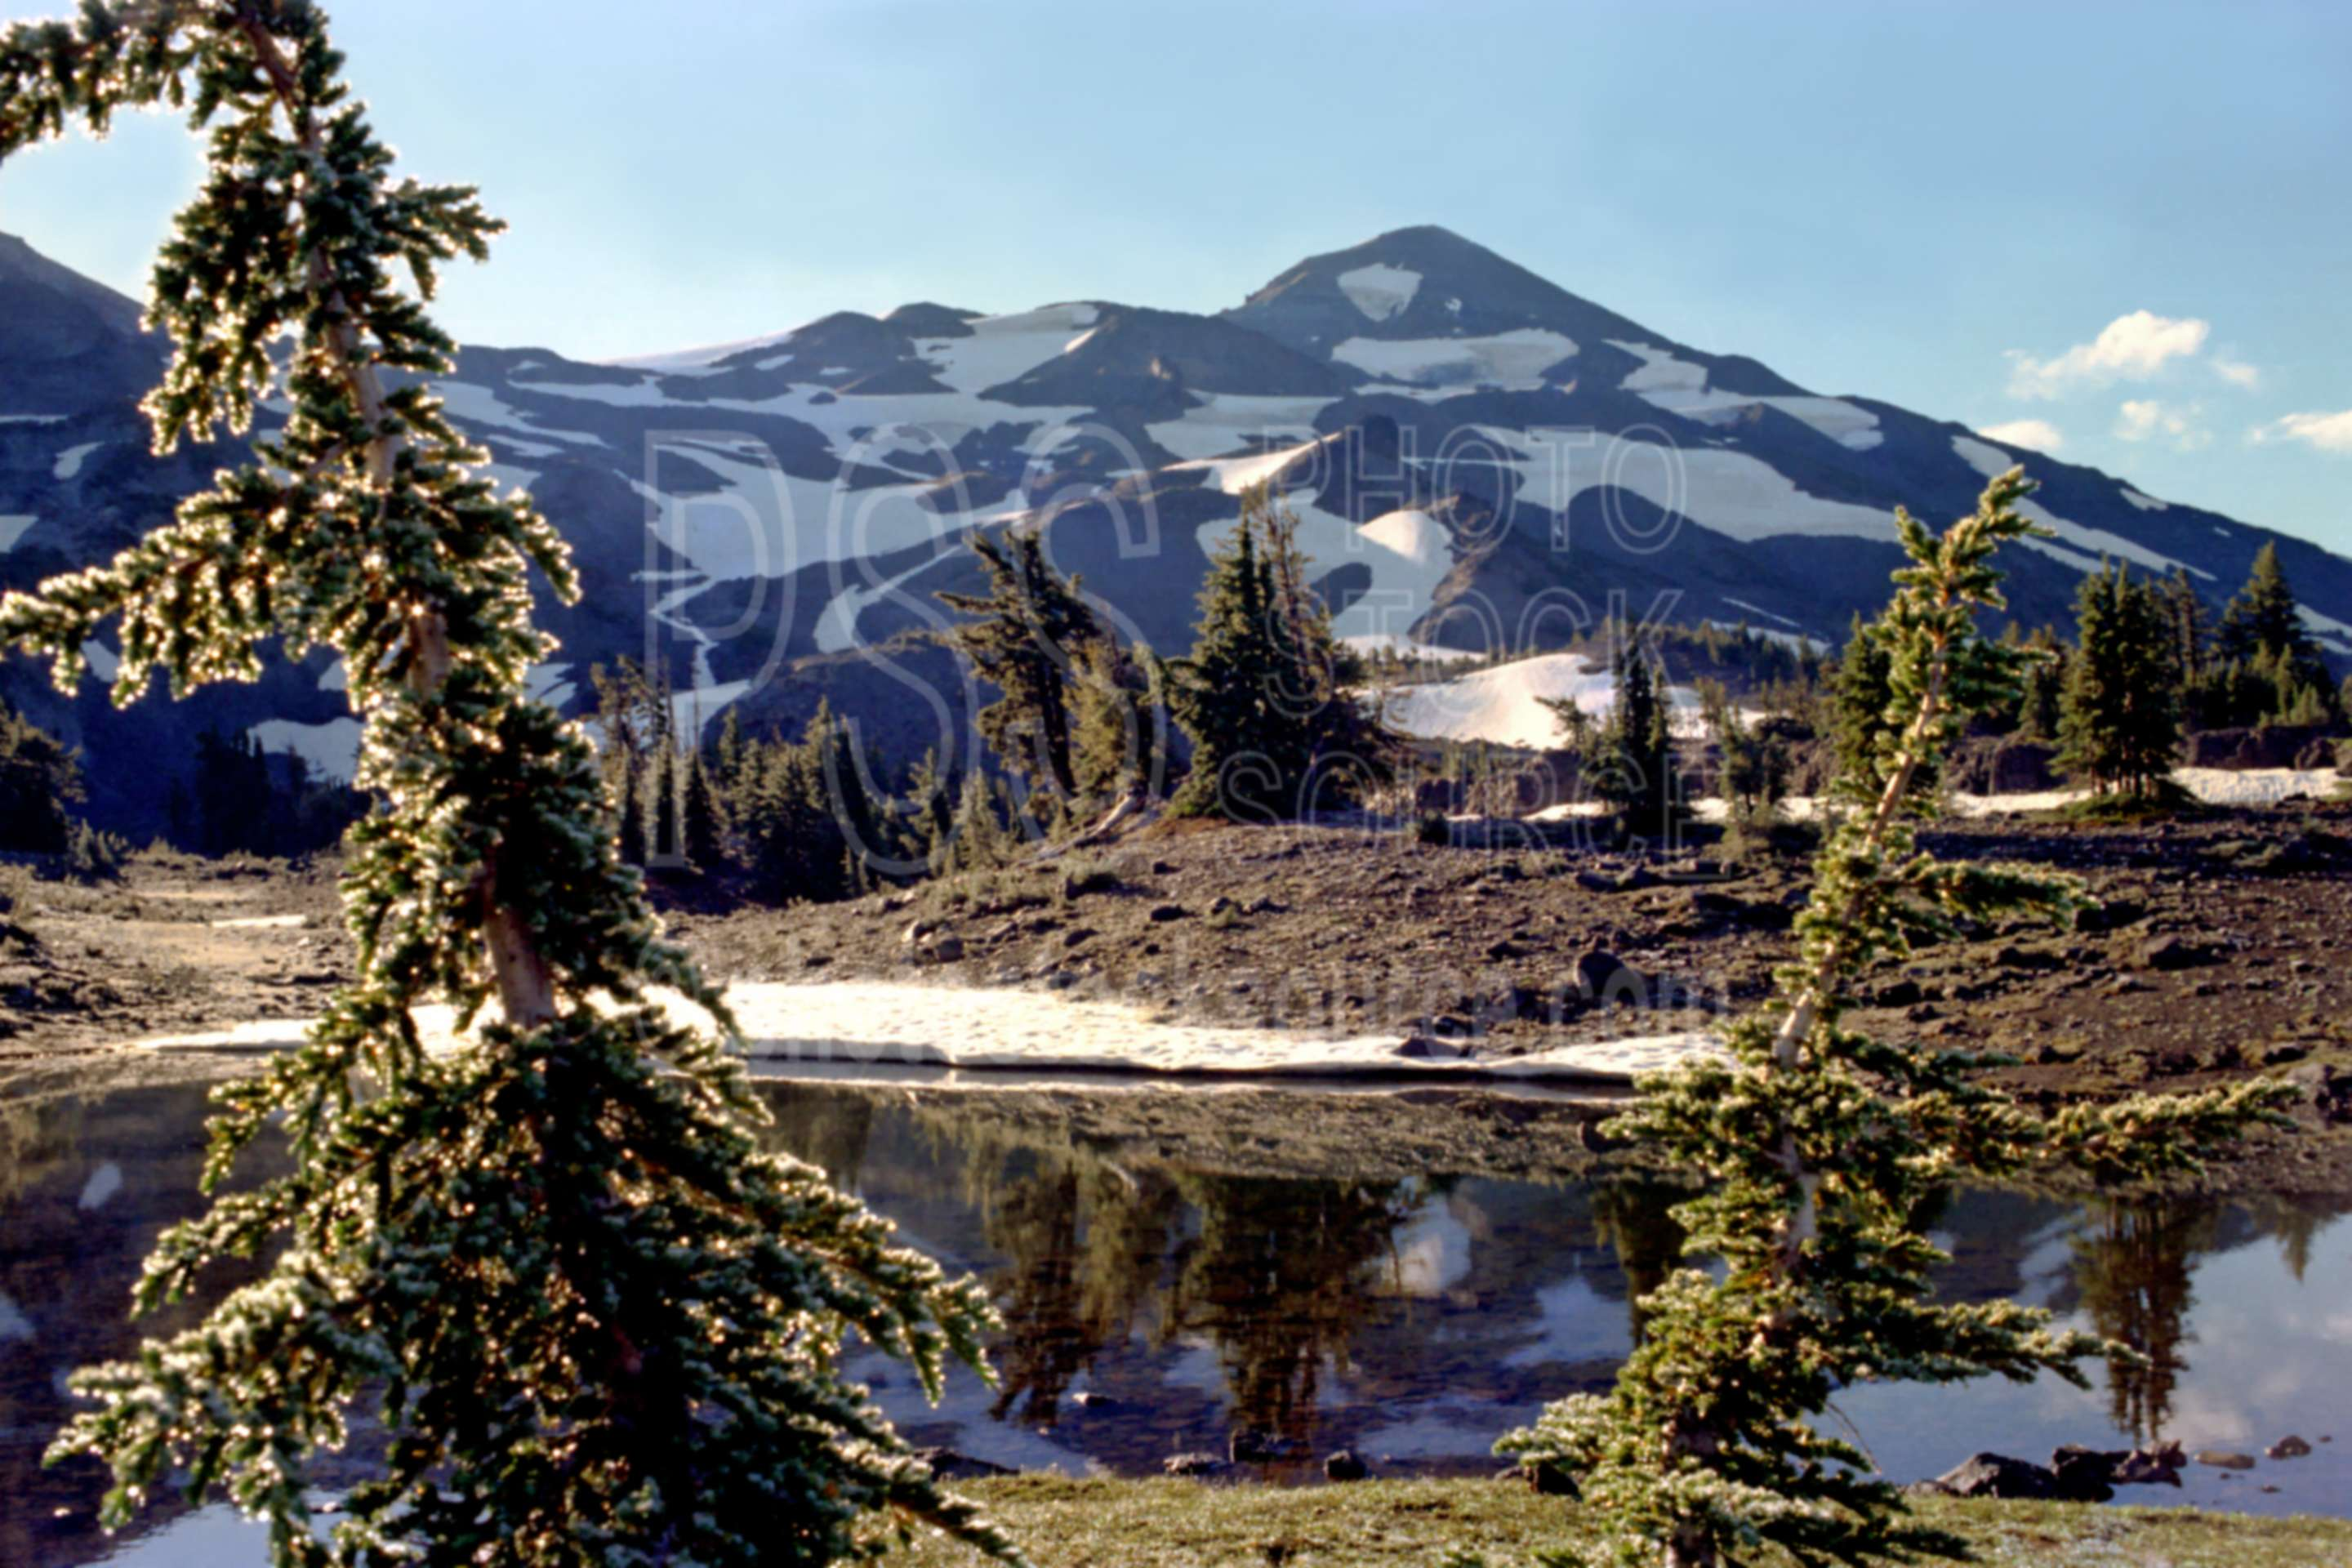 Middle Sister,arrowhead lake,lake,morning,usas,lakes rivers,mountains